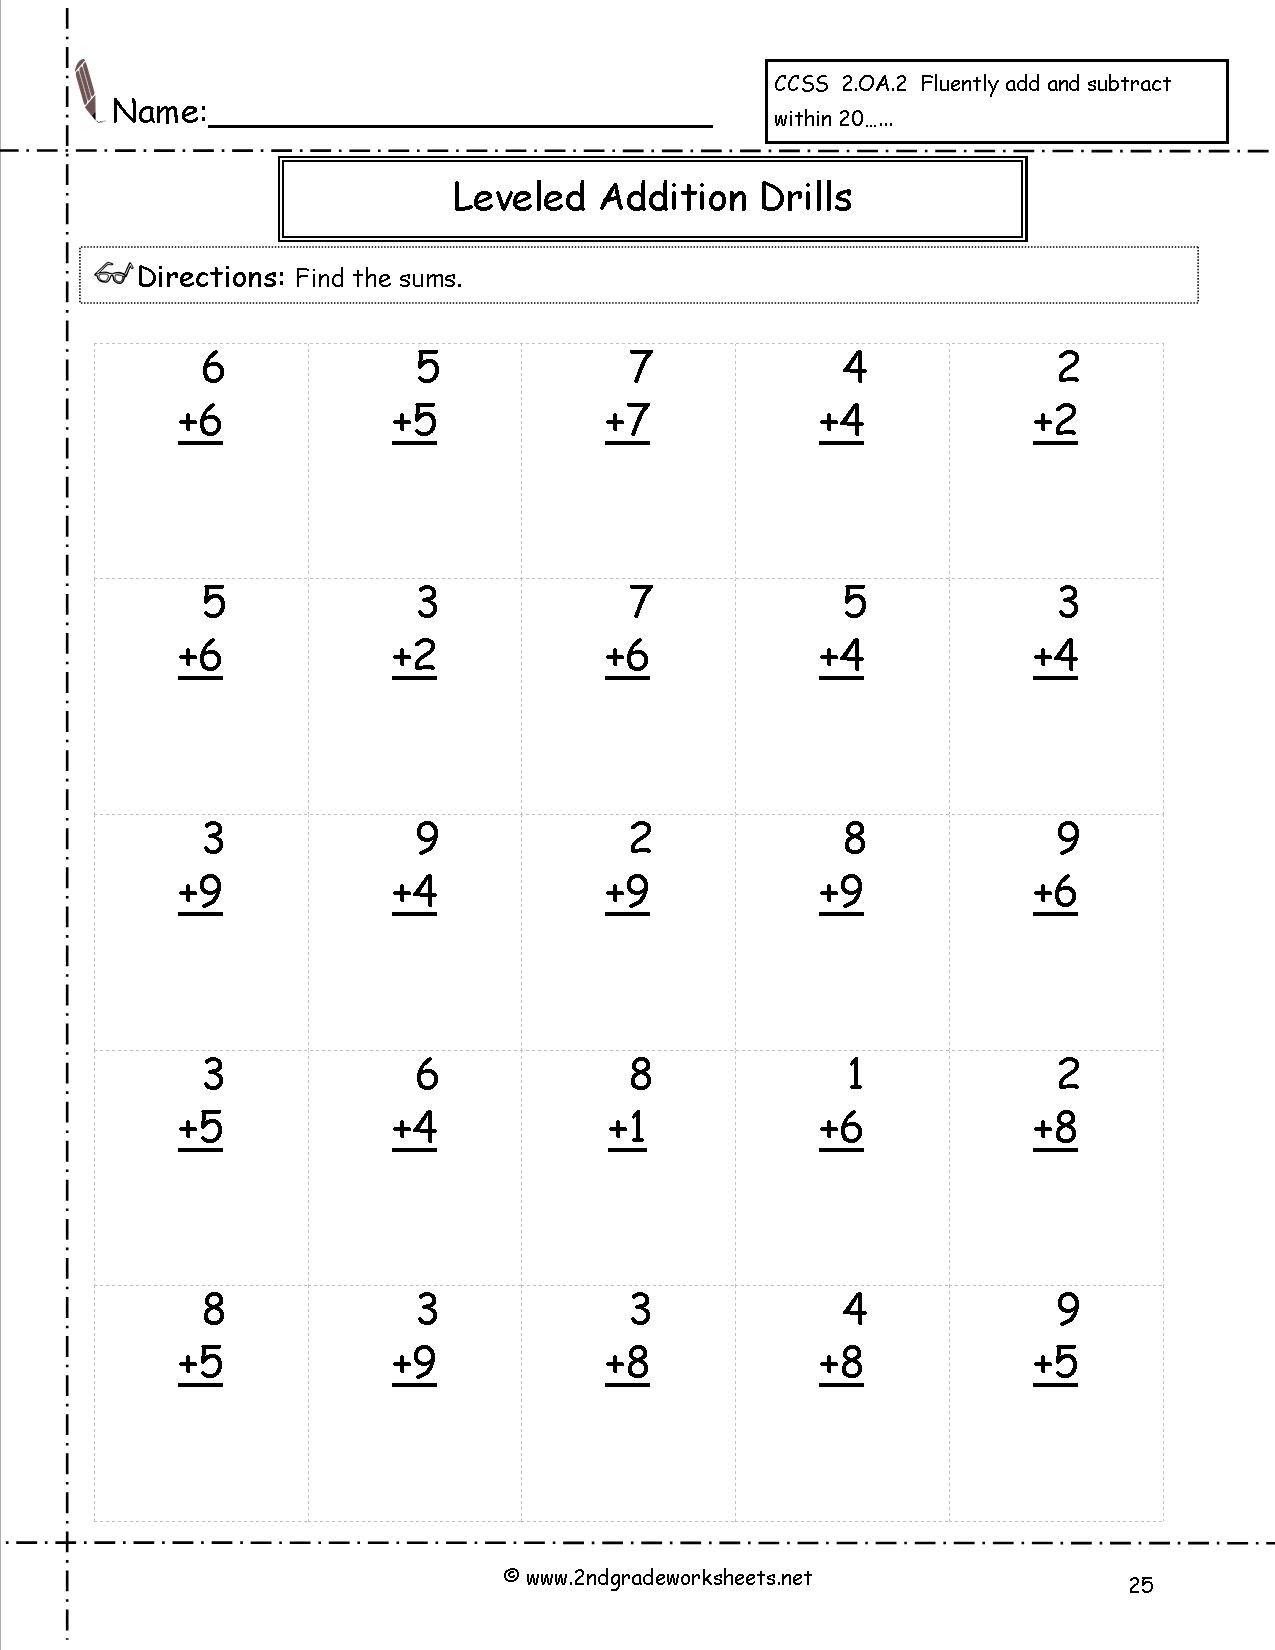 Free Math Worksheets And Printouts - Free Printable Addition And Subtraction Worksheets